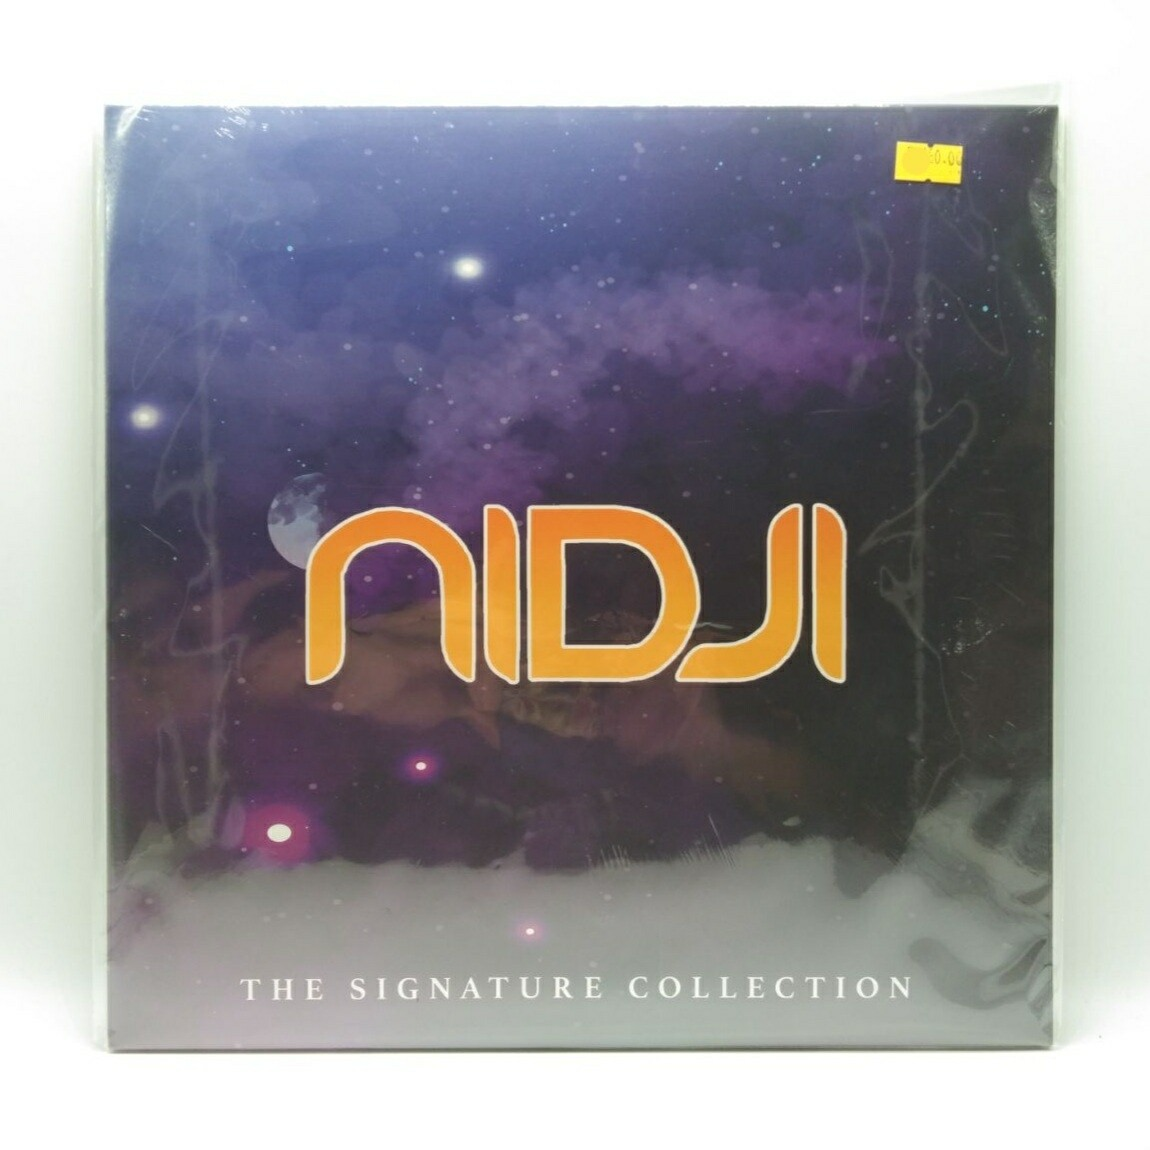 NIDJI -THE SIGNATURE COLLECTION- LP